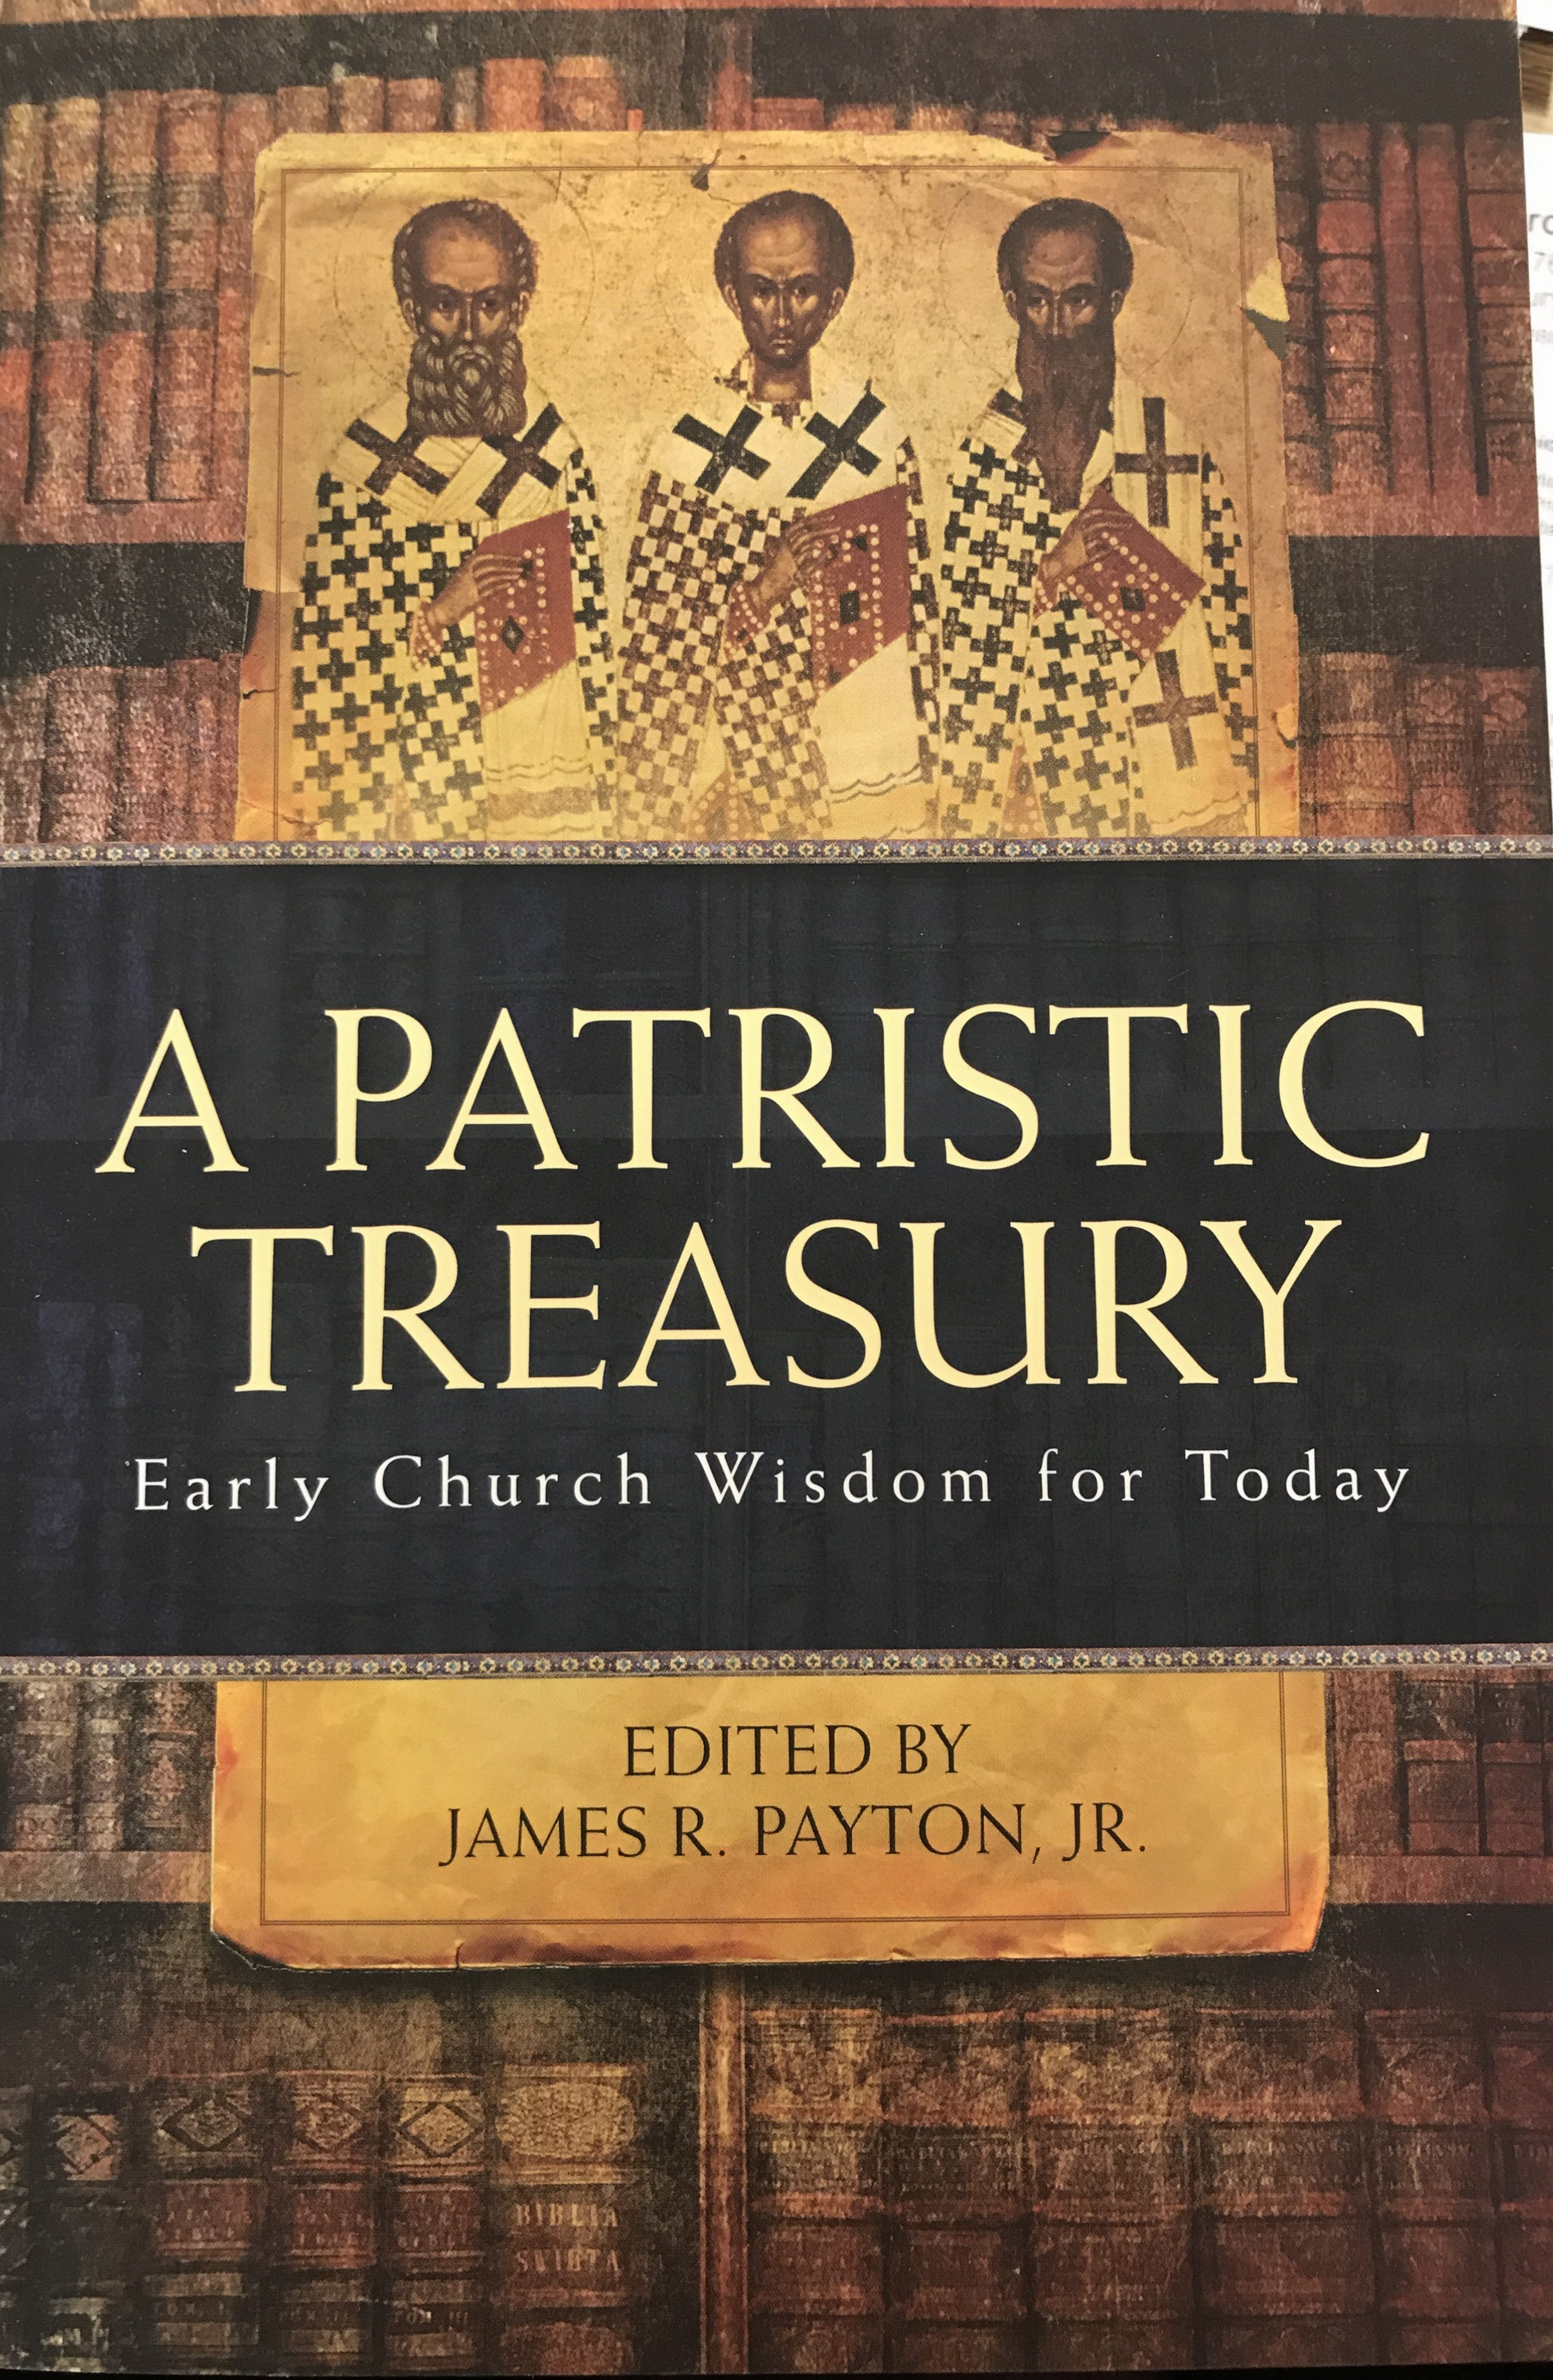 A Patristic Treasury: Early Church Wisdom for Today